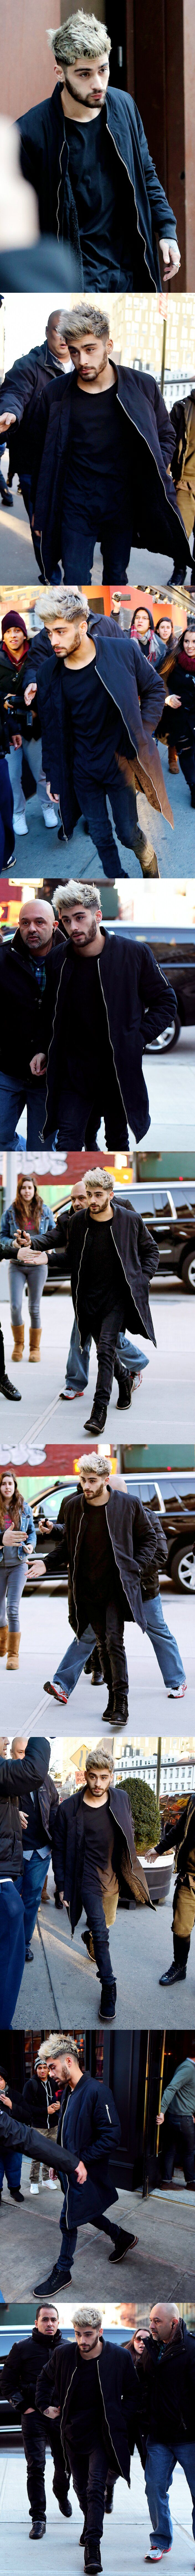 """Zayn and Gigi apartment hunting in NYC 4 Jan. Fans tried guilt tripping Zayn for pictures by saying """" we supported you"""""""